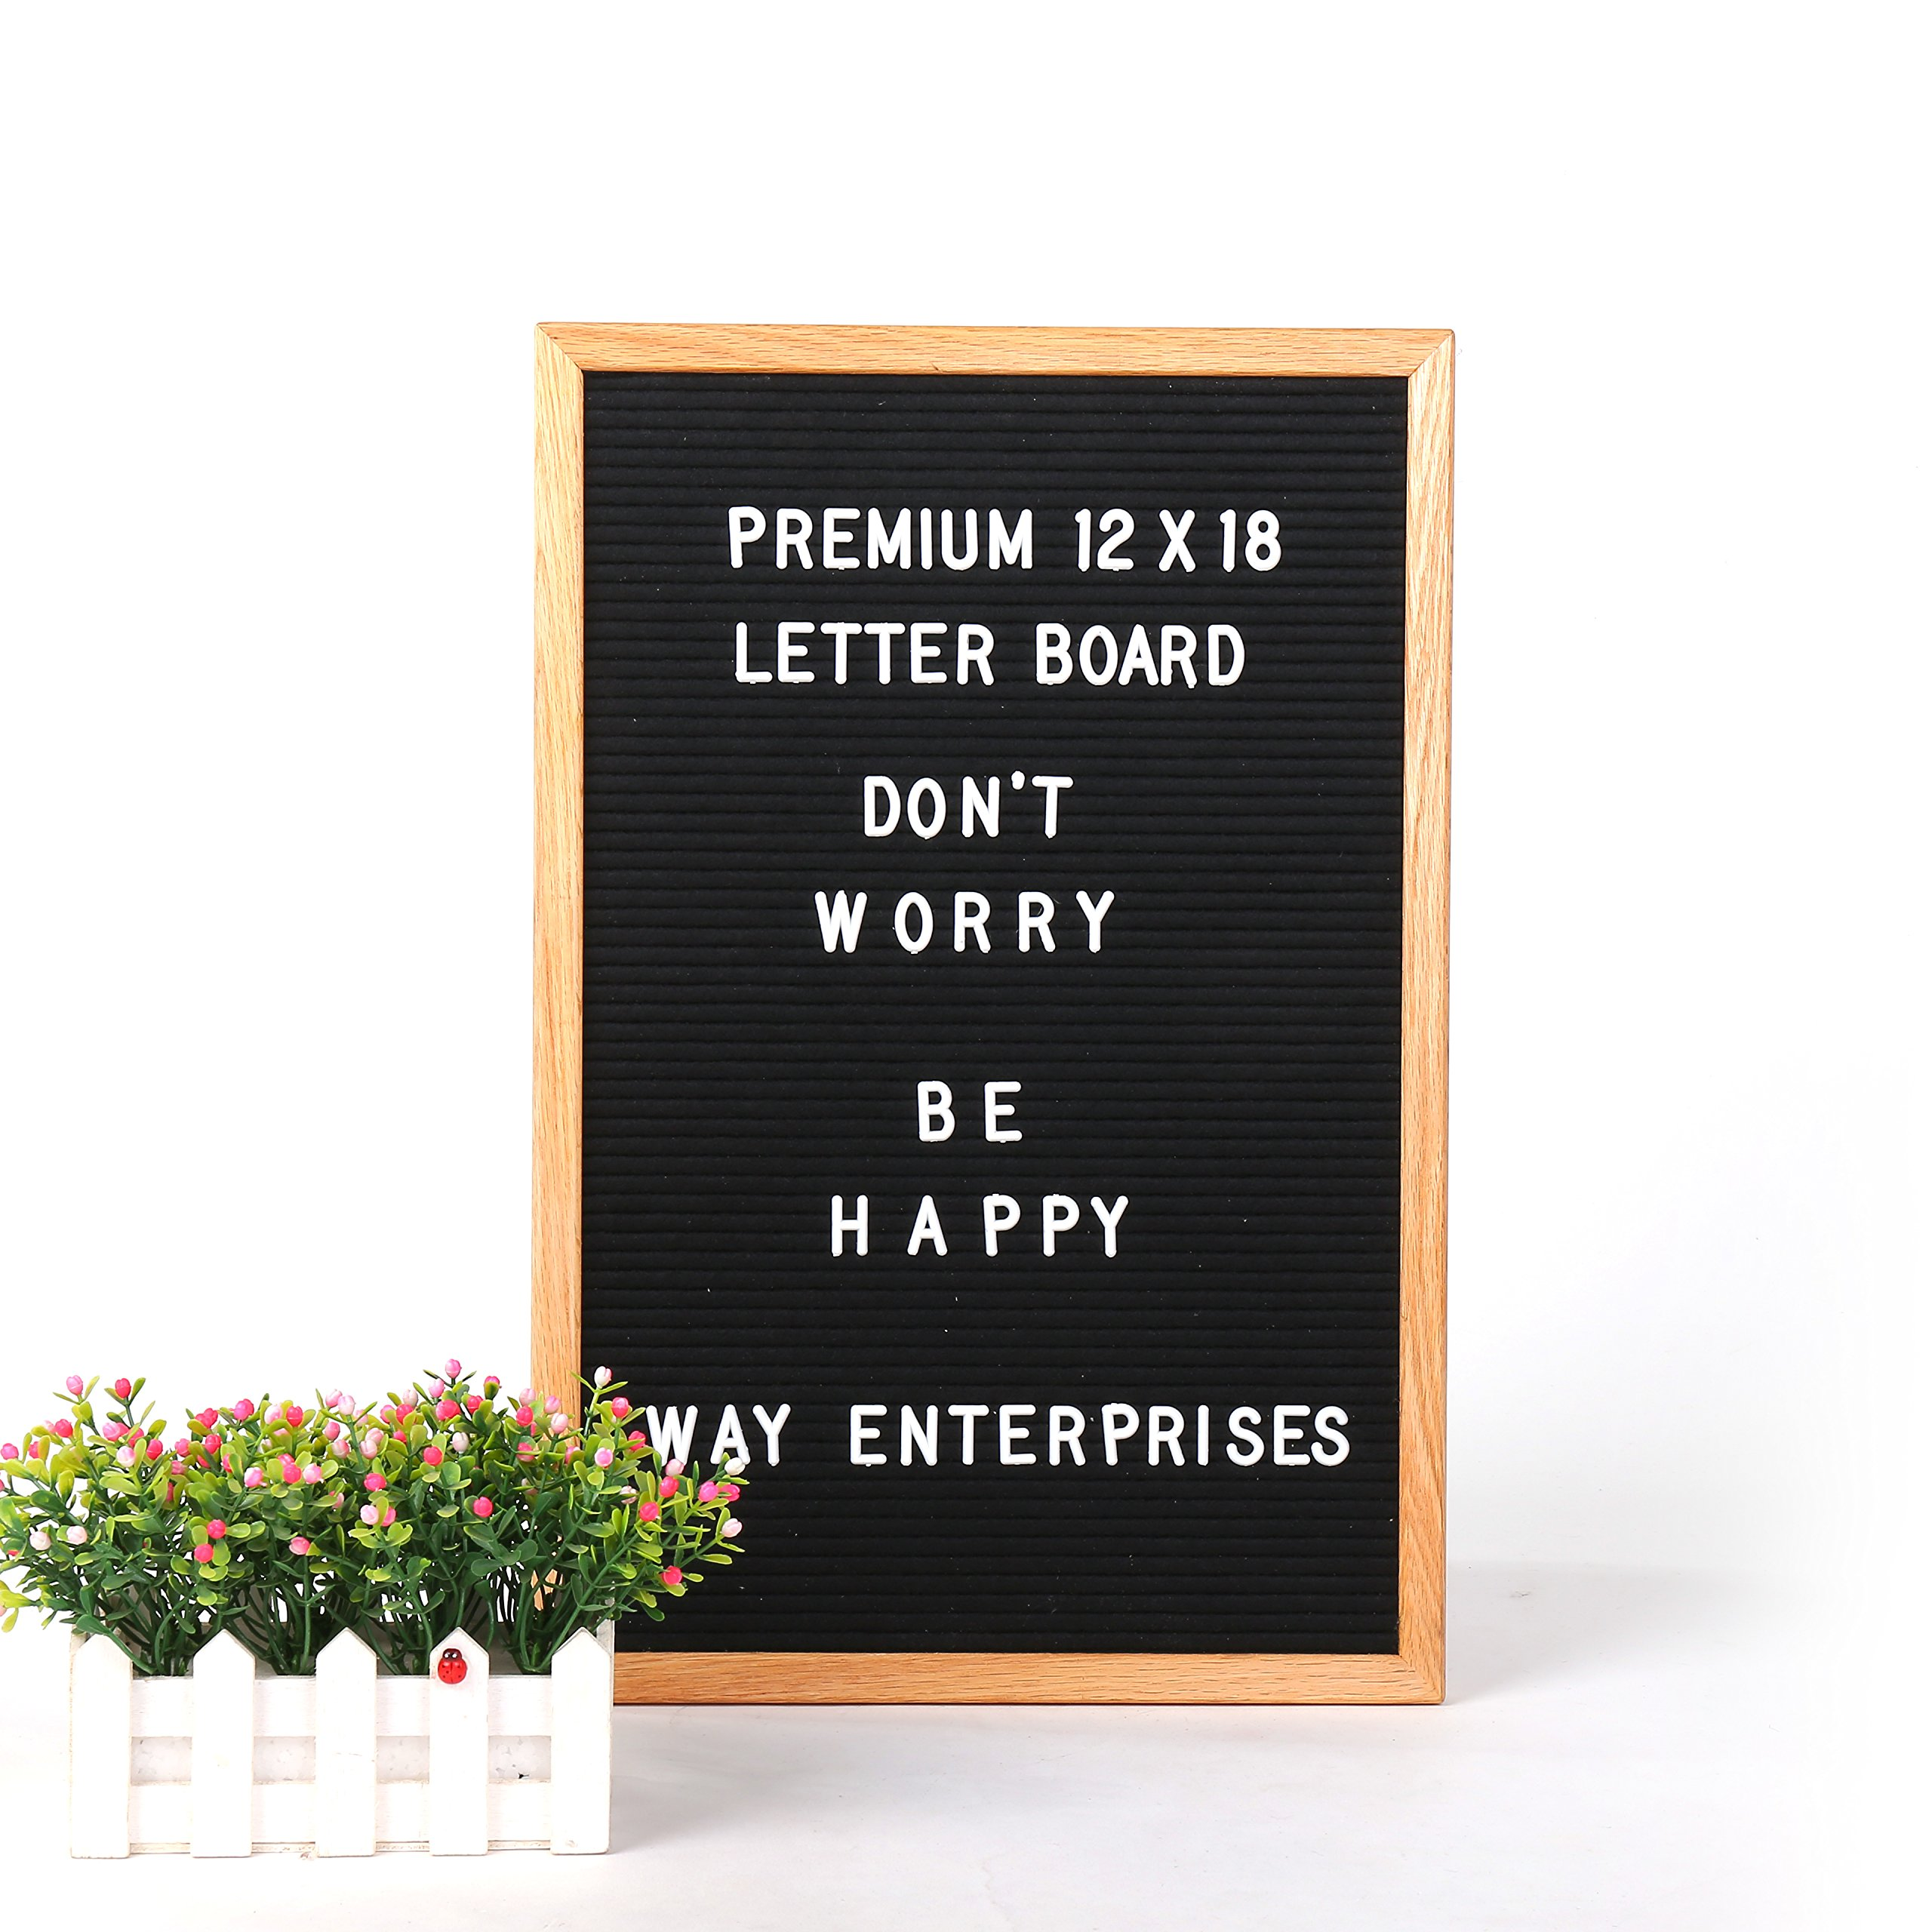 Felt Letter Board with Changeable Letter Set And Cotton Bag, 12x18'' Oak Menu Board With 346-3/4 Inch Letter Tiles, Including Numbers & Special Characters For Home Decoration by WAY Enterprises, LLC